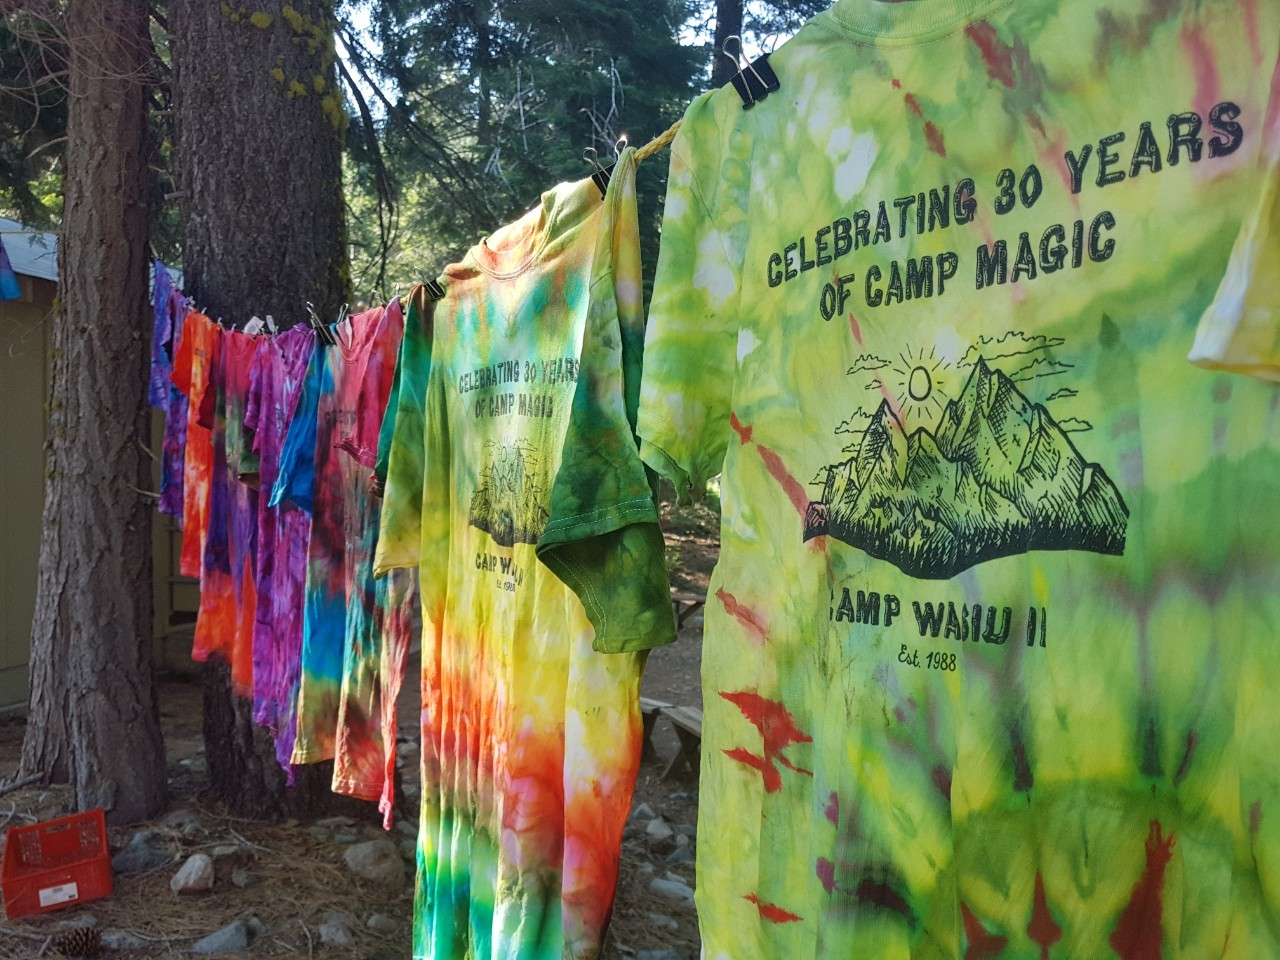 Camp Wasiu II T-Shirt